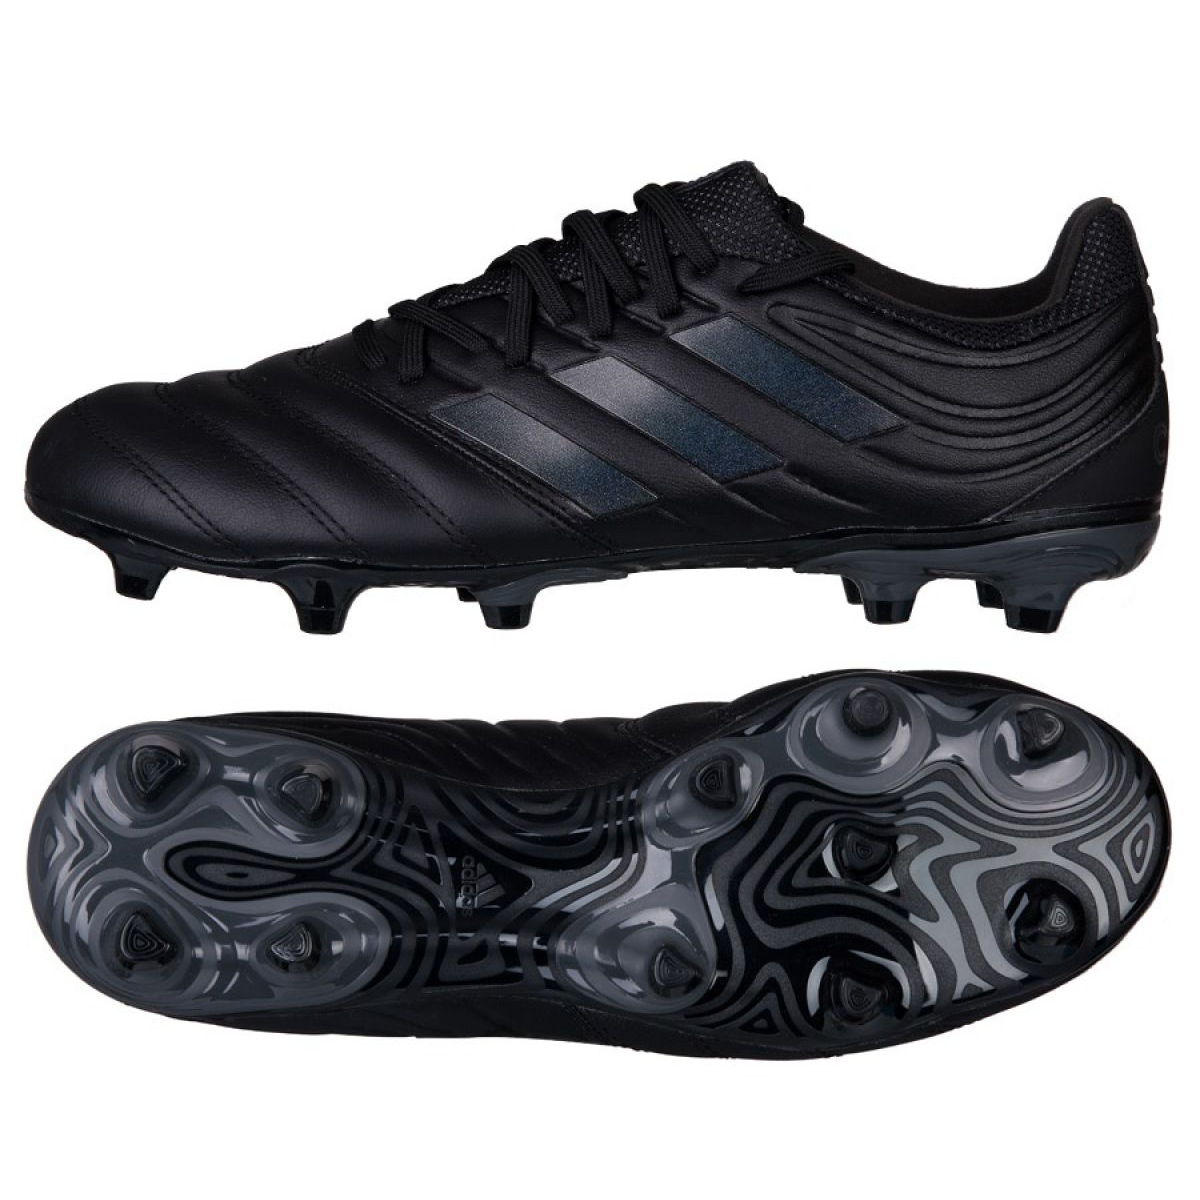 taille 40 8c2bf a9d02 Football boots adidas Copa 19.3 Fg M BC0553